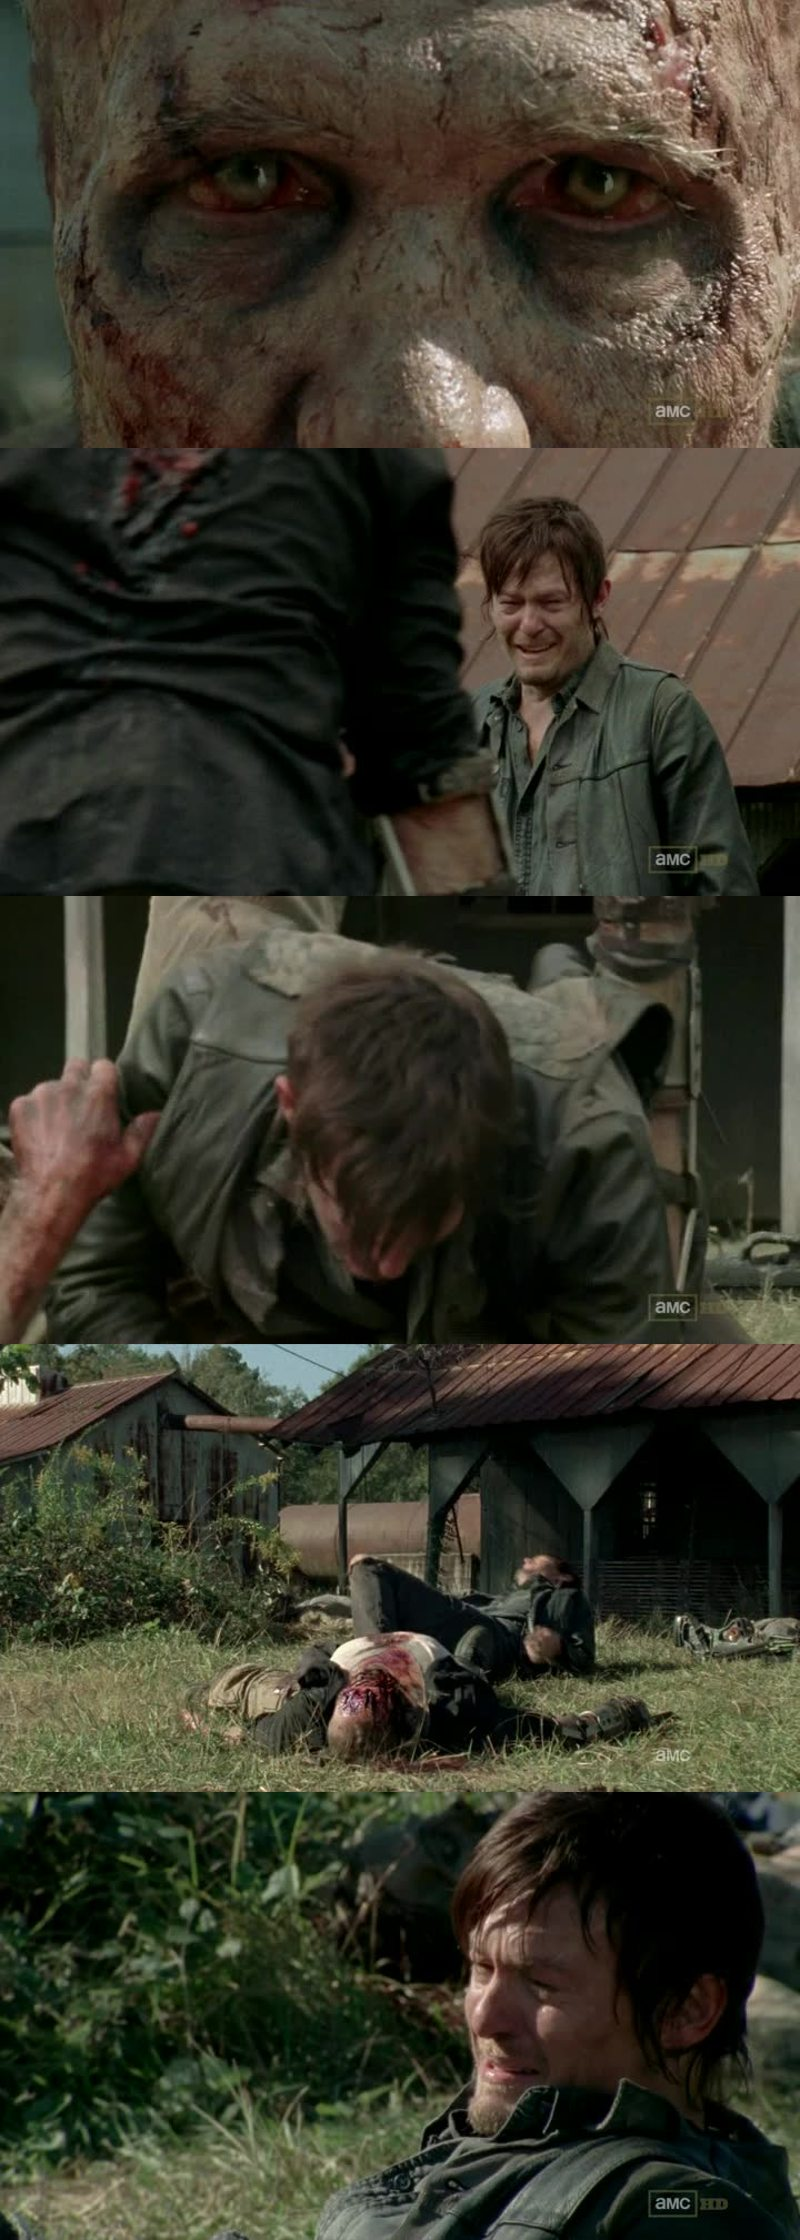 Poor Merle, he showed us that he was more than a simple idiot completly mad... RIP  I also feel so sorry for Daryl... I wanna hug him !